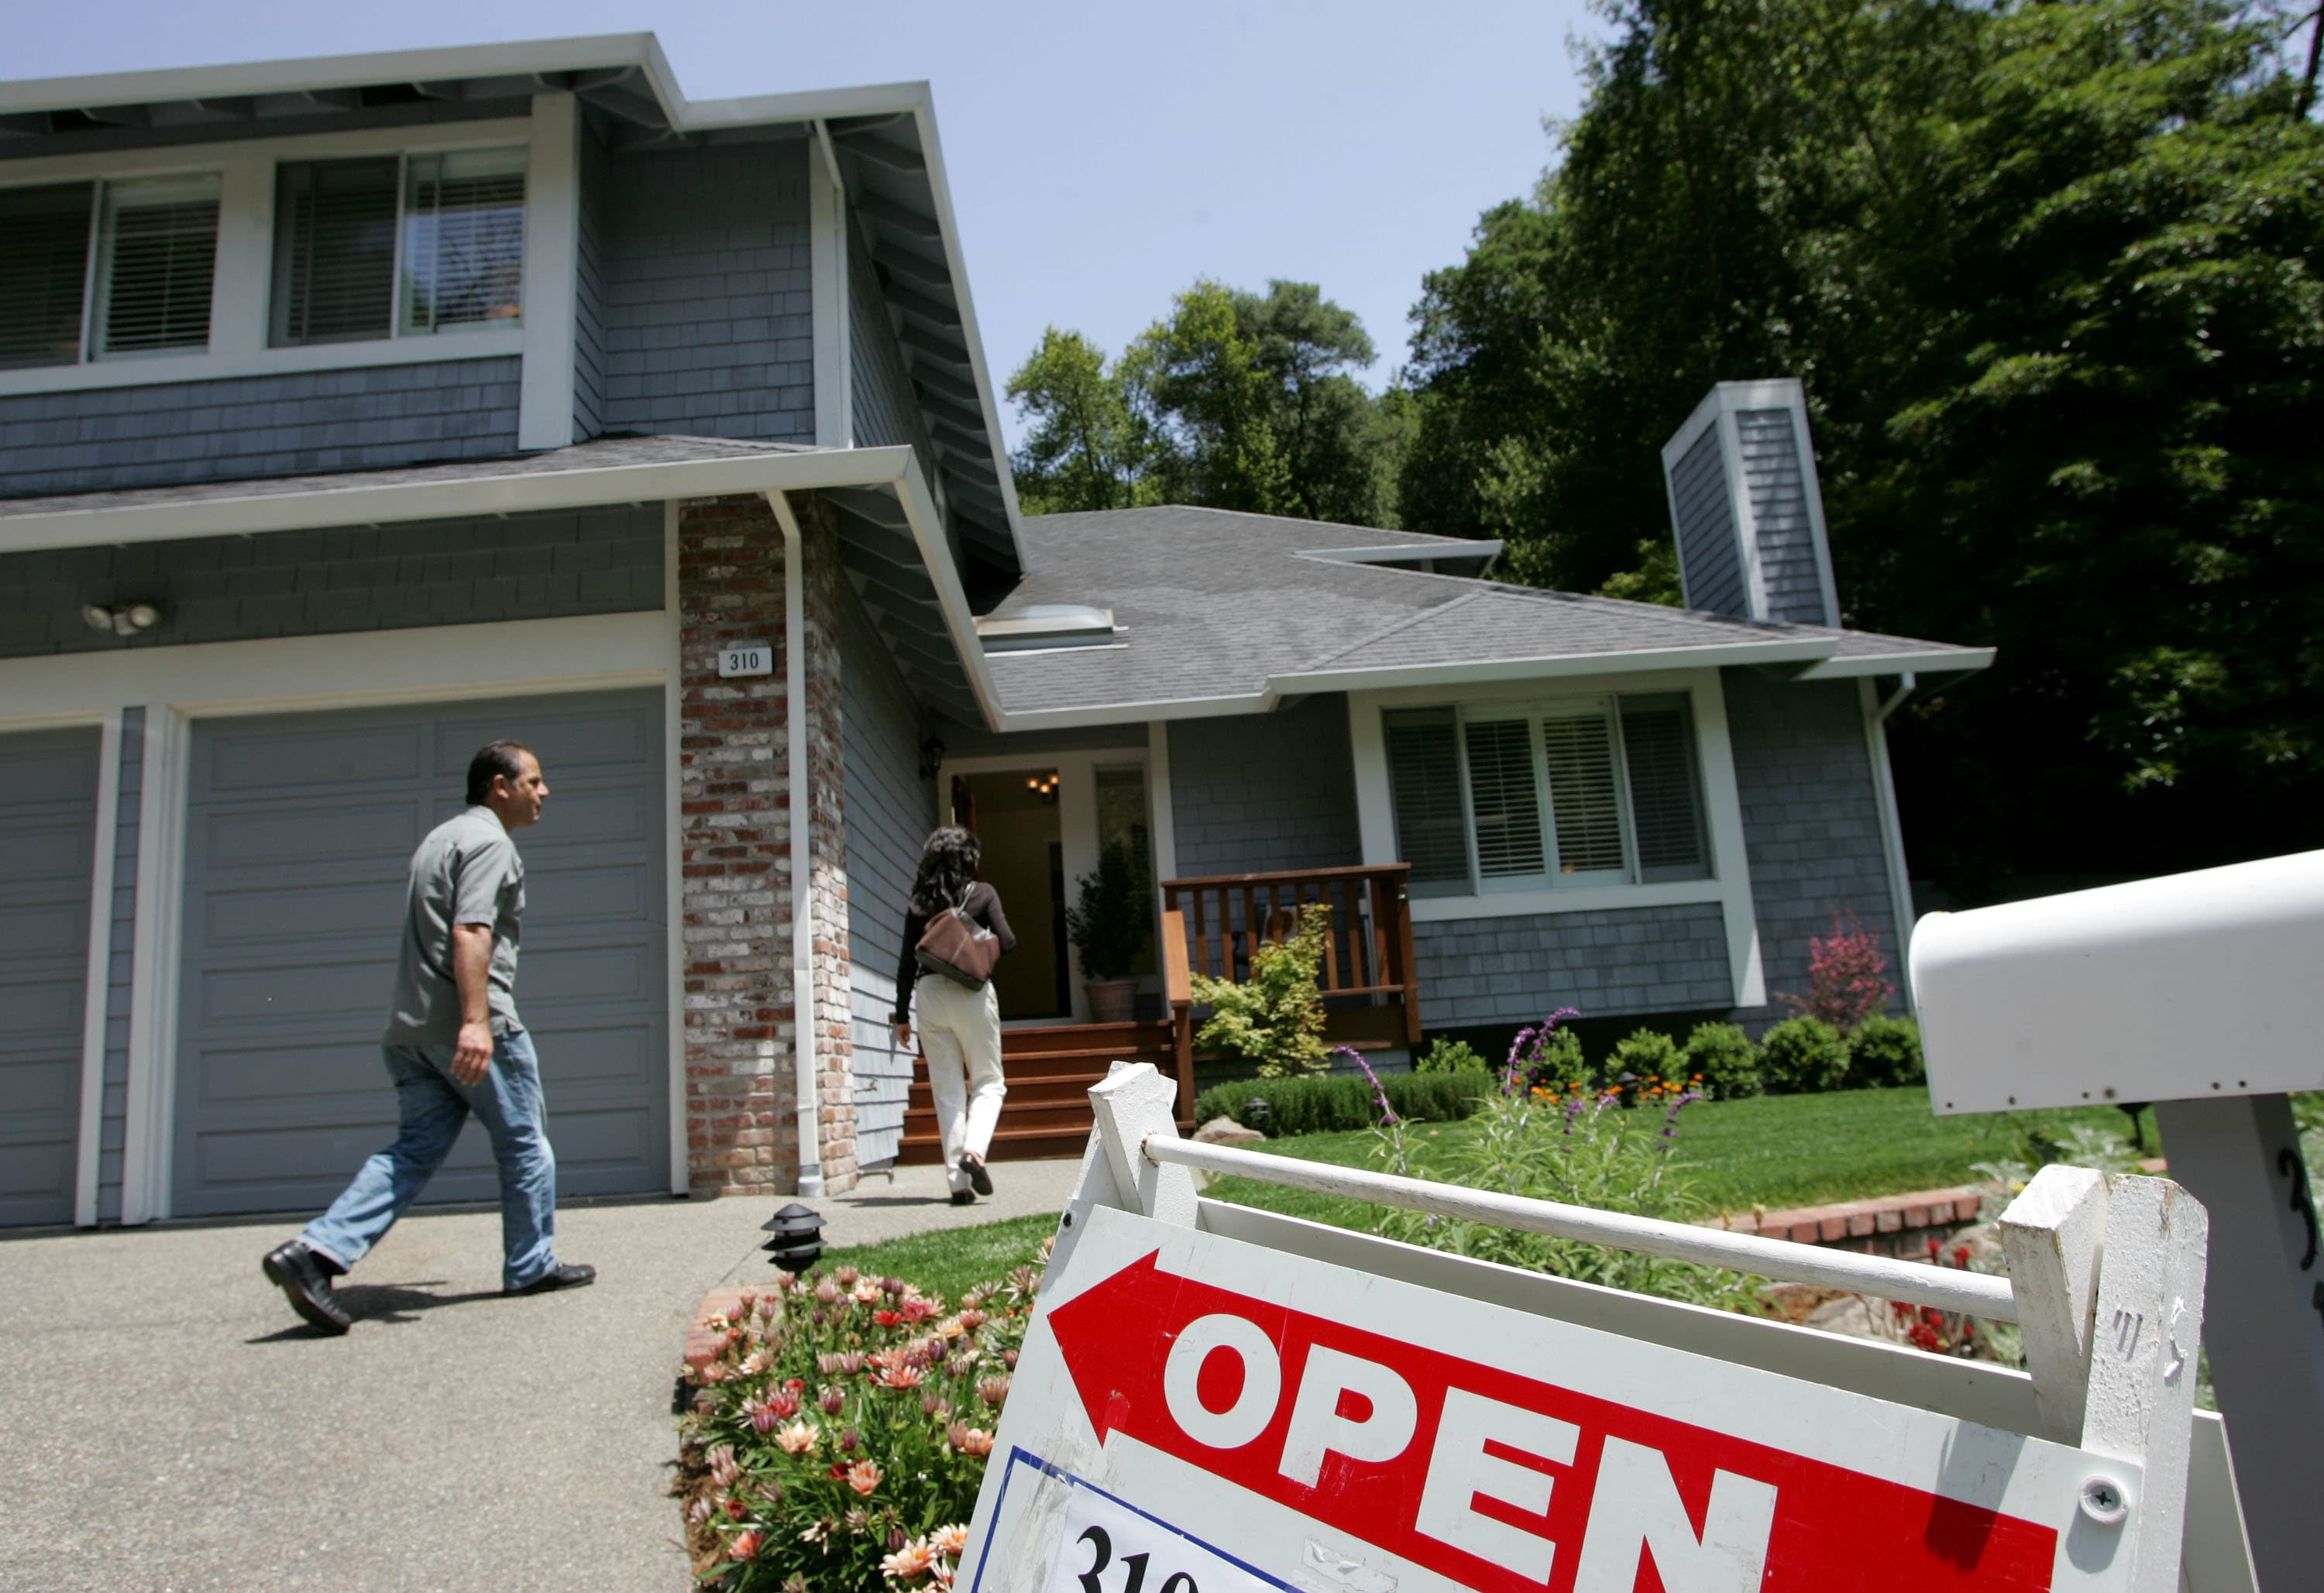 GS: New Home sales house for sale prospective buyers San Rafael Ca.